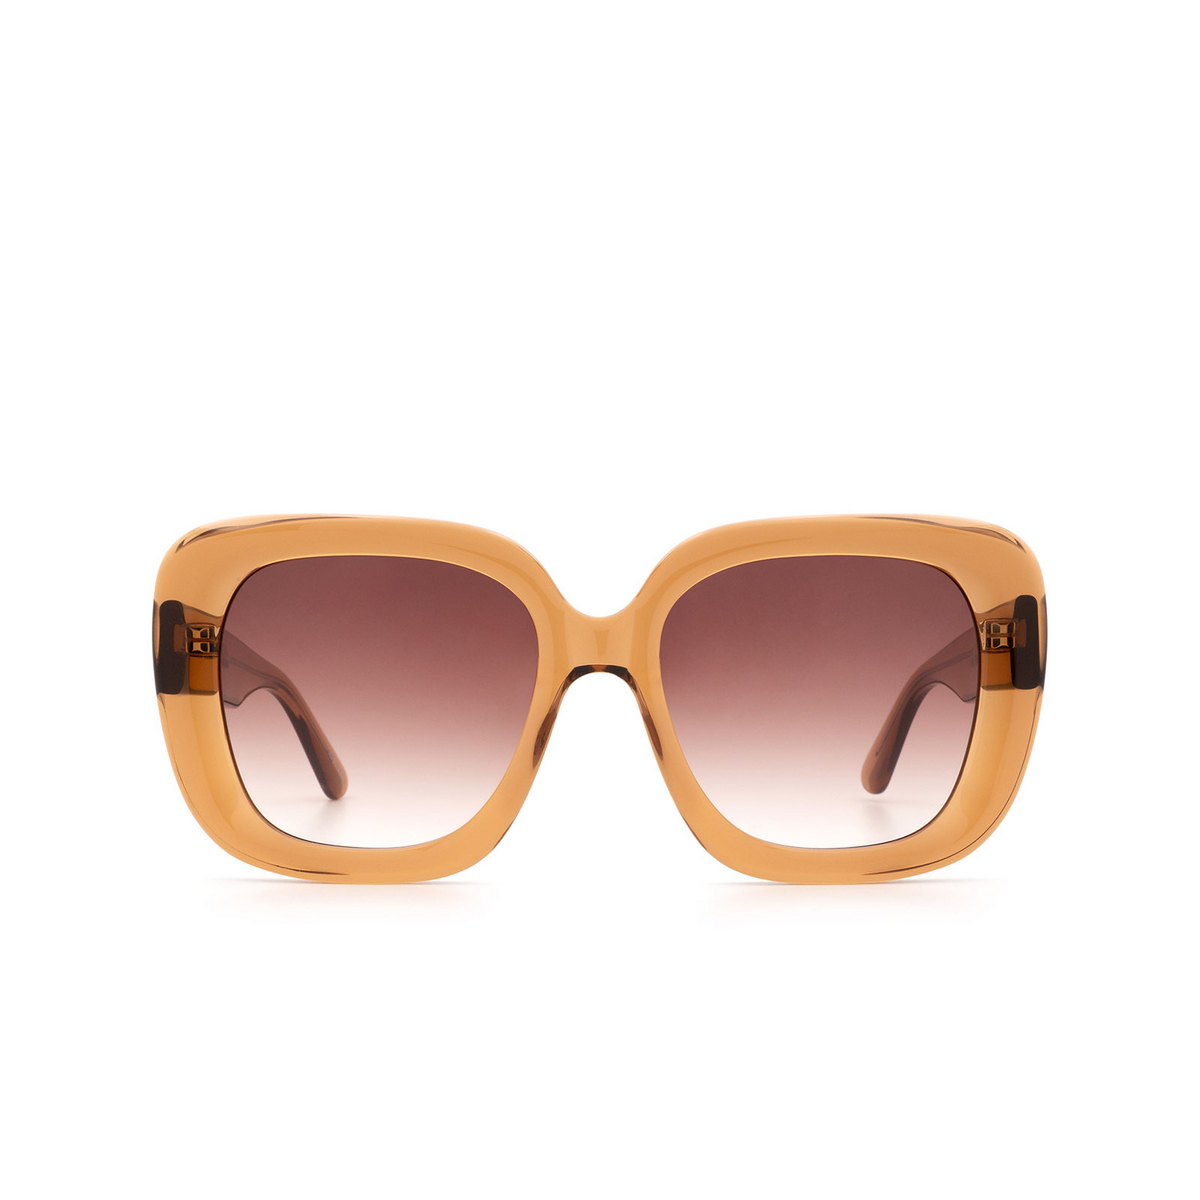 Chimi® Square Sunglasses: #108 color Brown - front view.